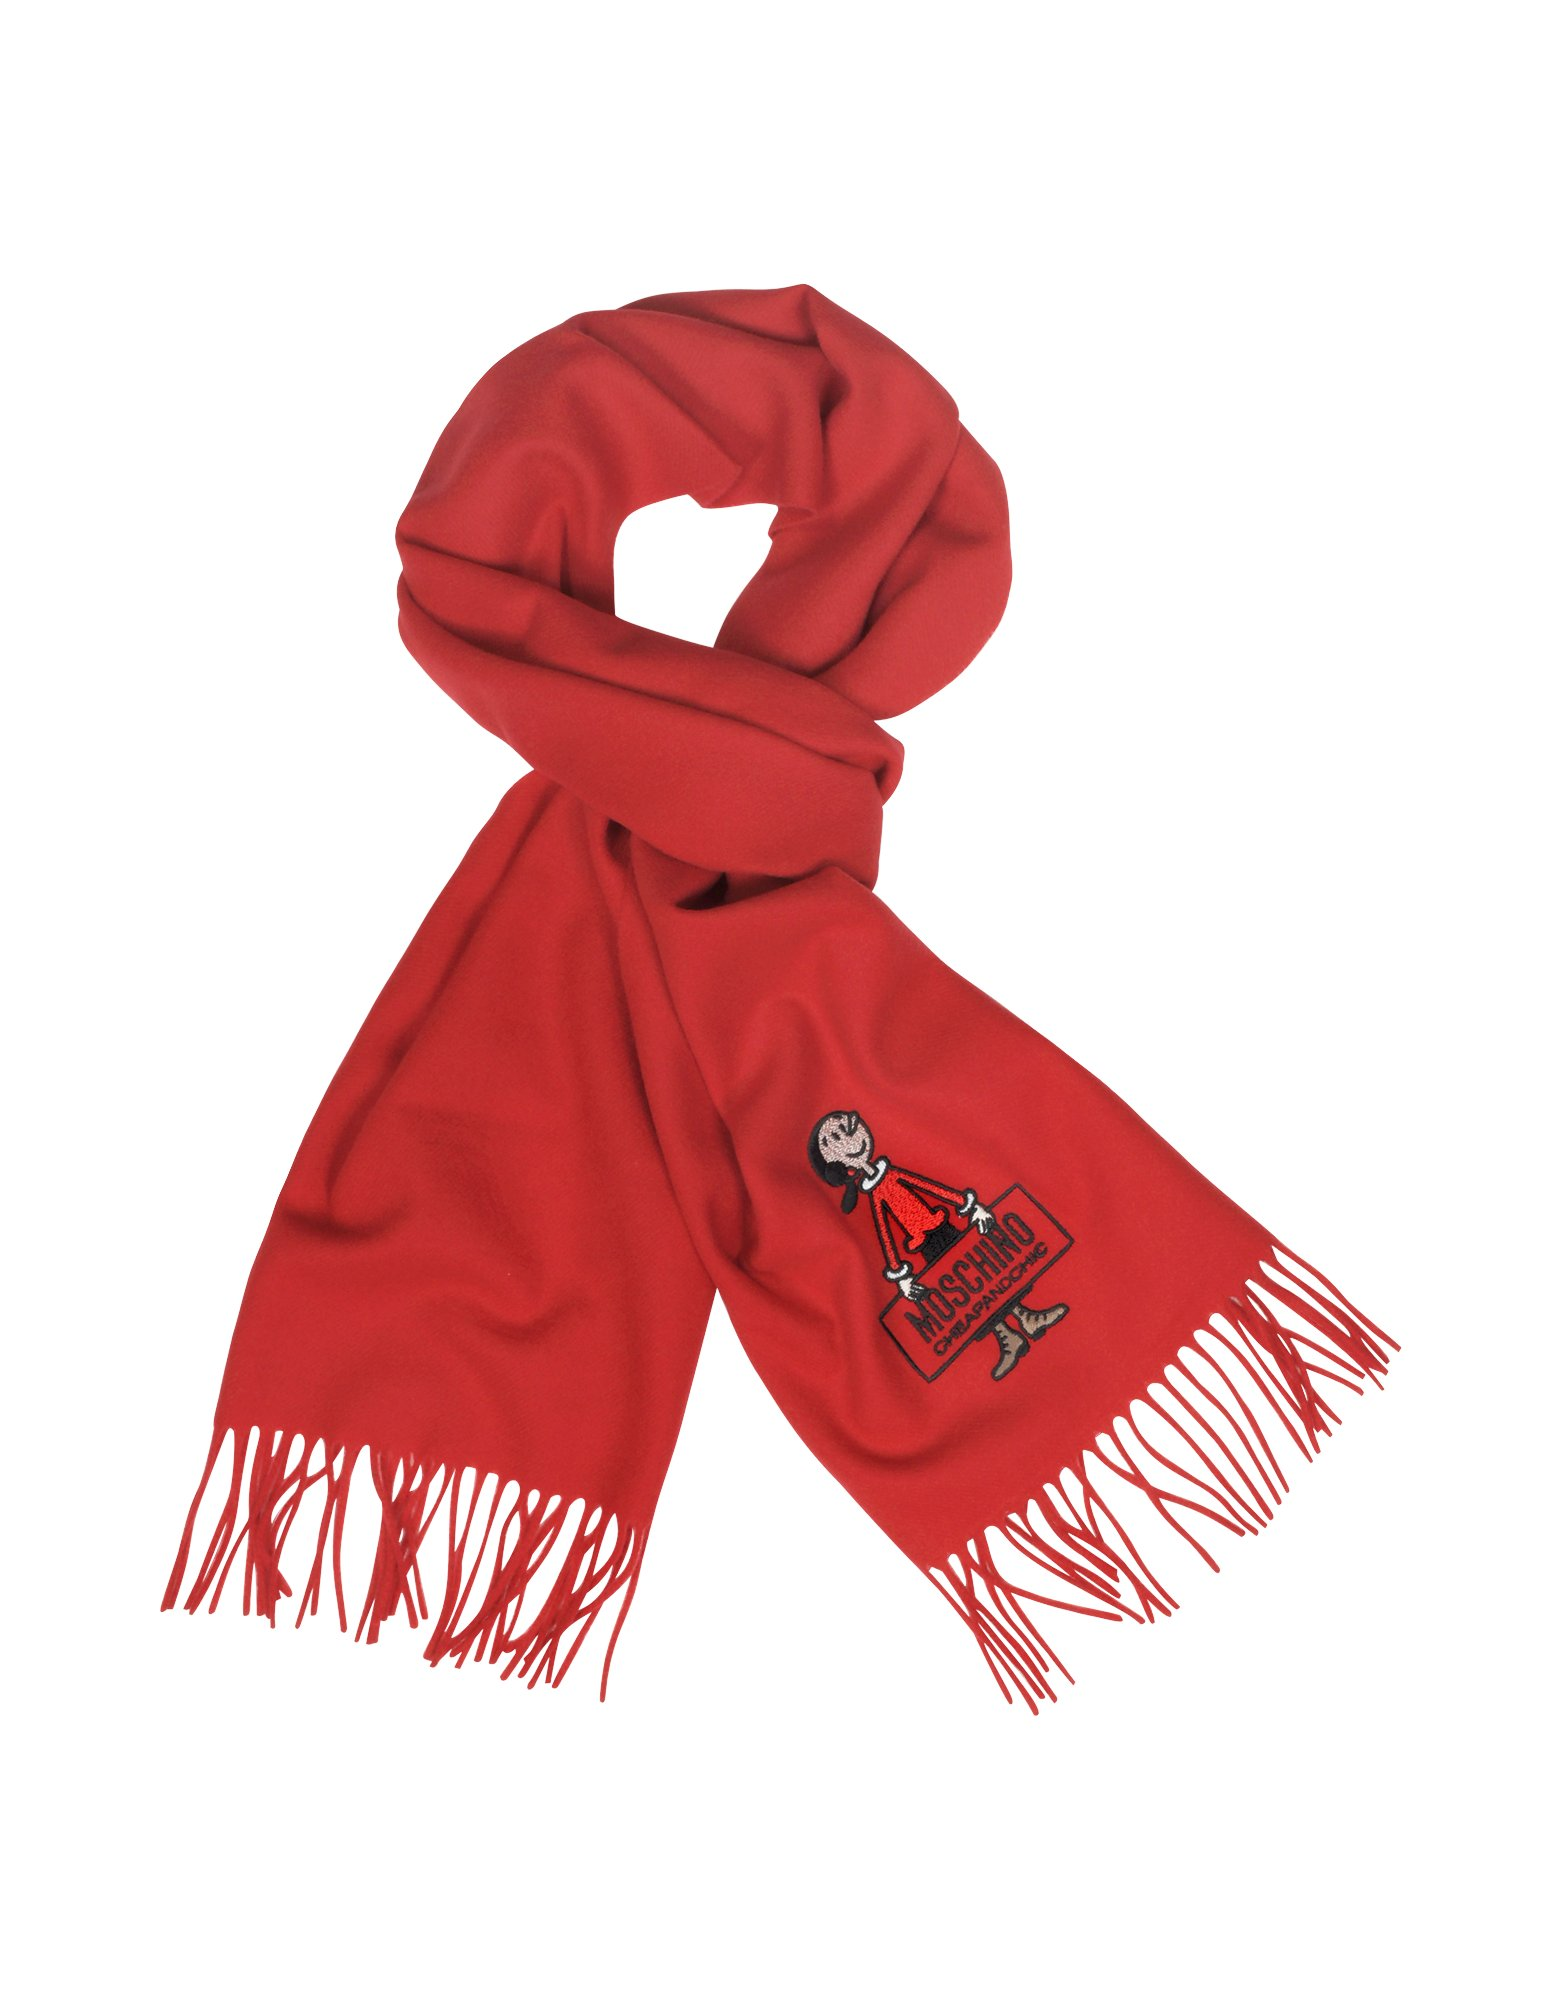 eef3967fed Moschino Cheap and Chic Olive Oil Solid Wool Long Scarf in Red - Lyst